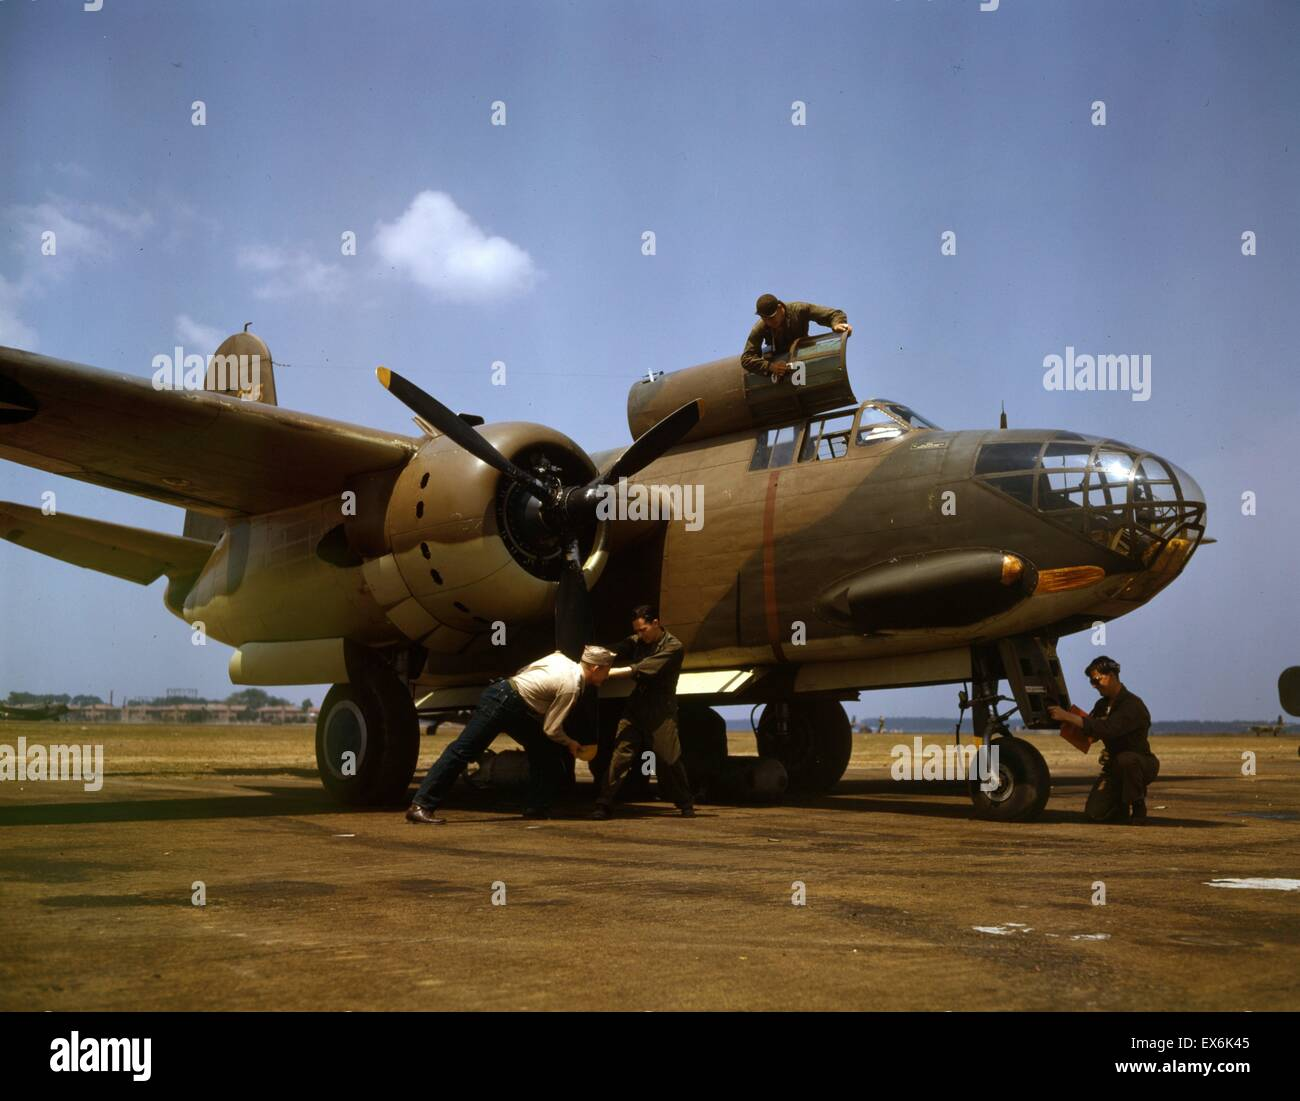 Colour photograph of the servicing of an A-20 bomber, Langley Field, Virginia. Photographed by Alfred T. Palmer. - Stock Image